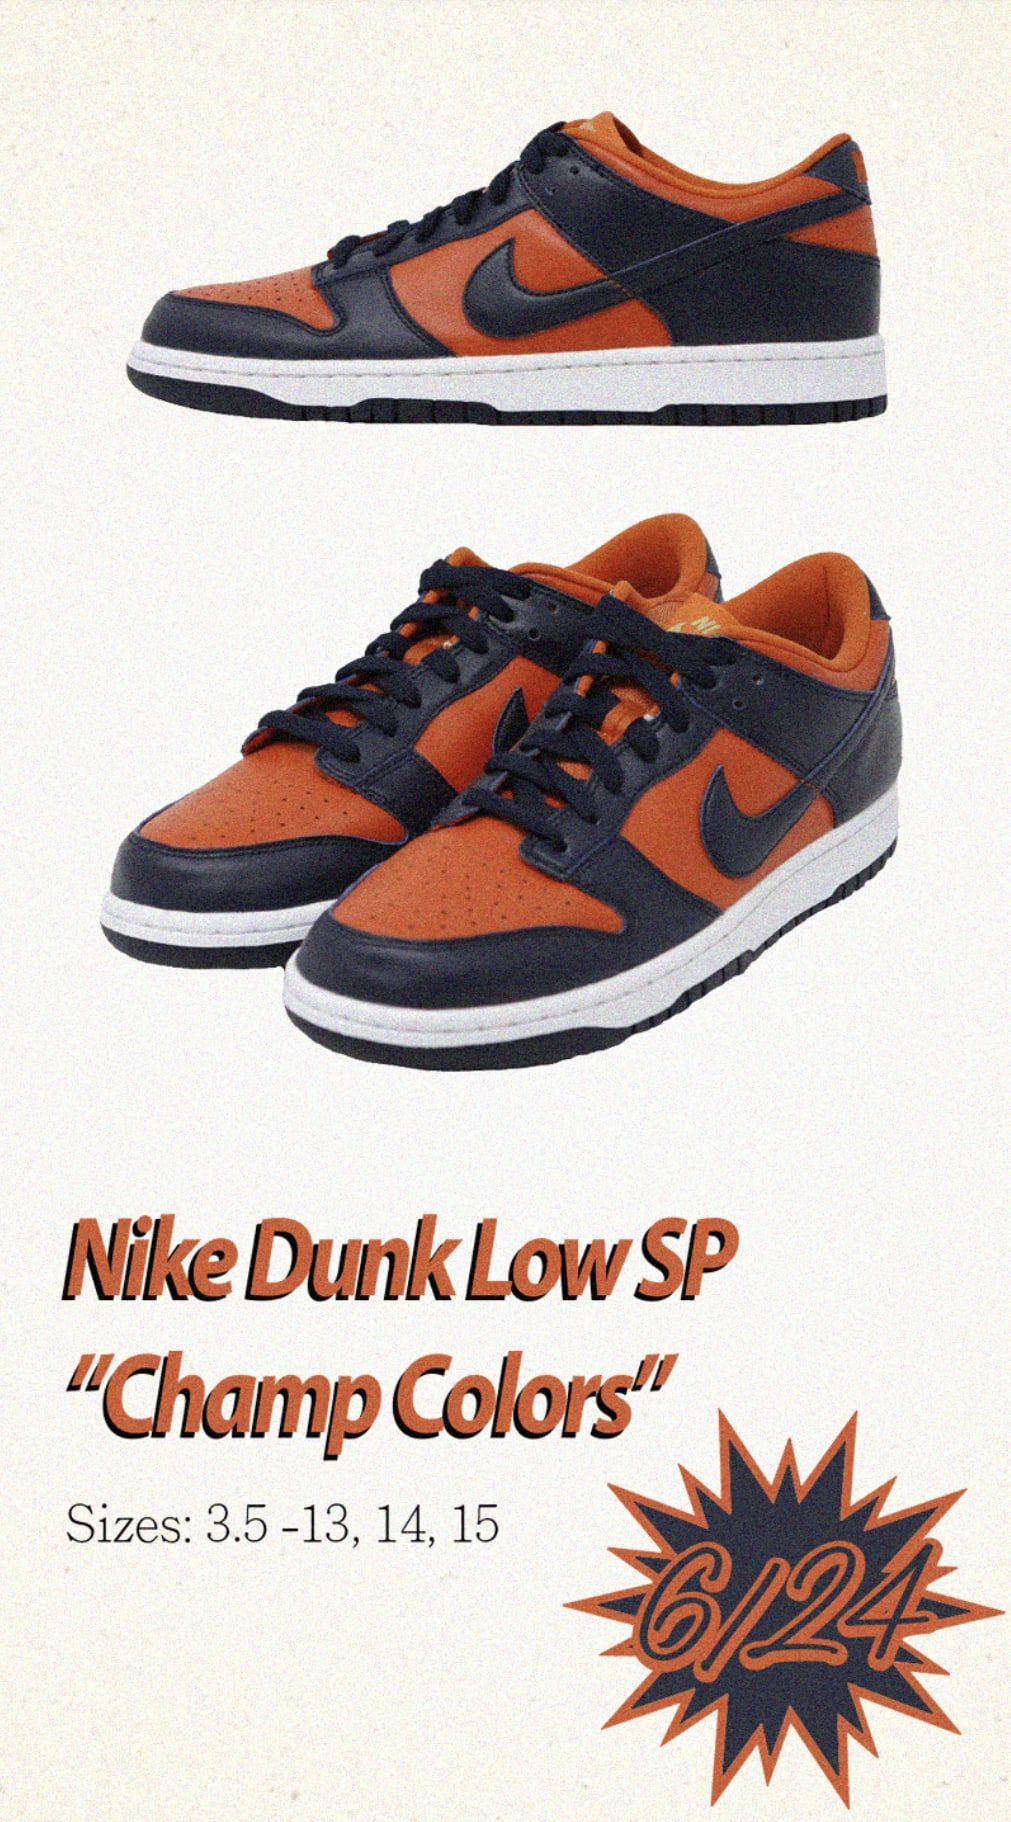 Nike Dunk Low SP 'Champ Colors' SNKRS Release Date